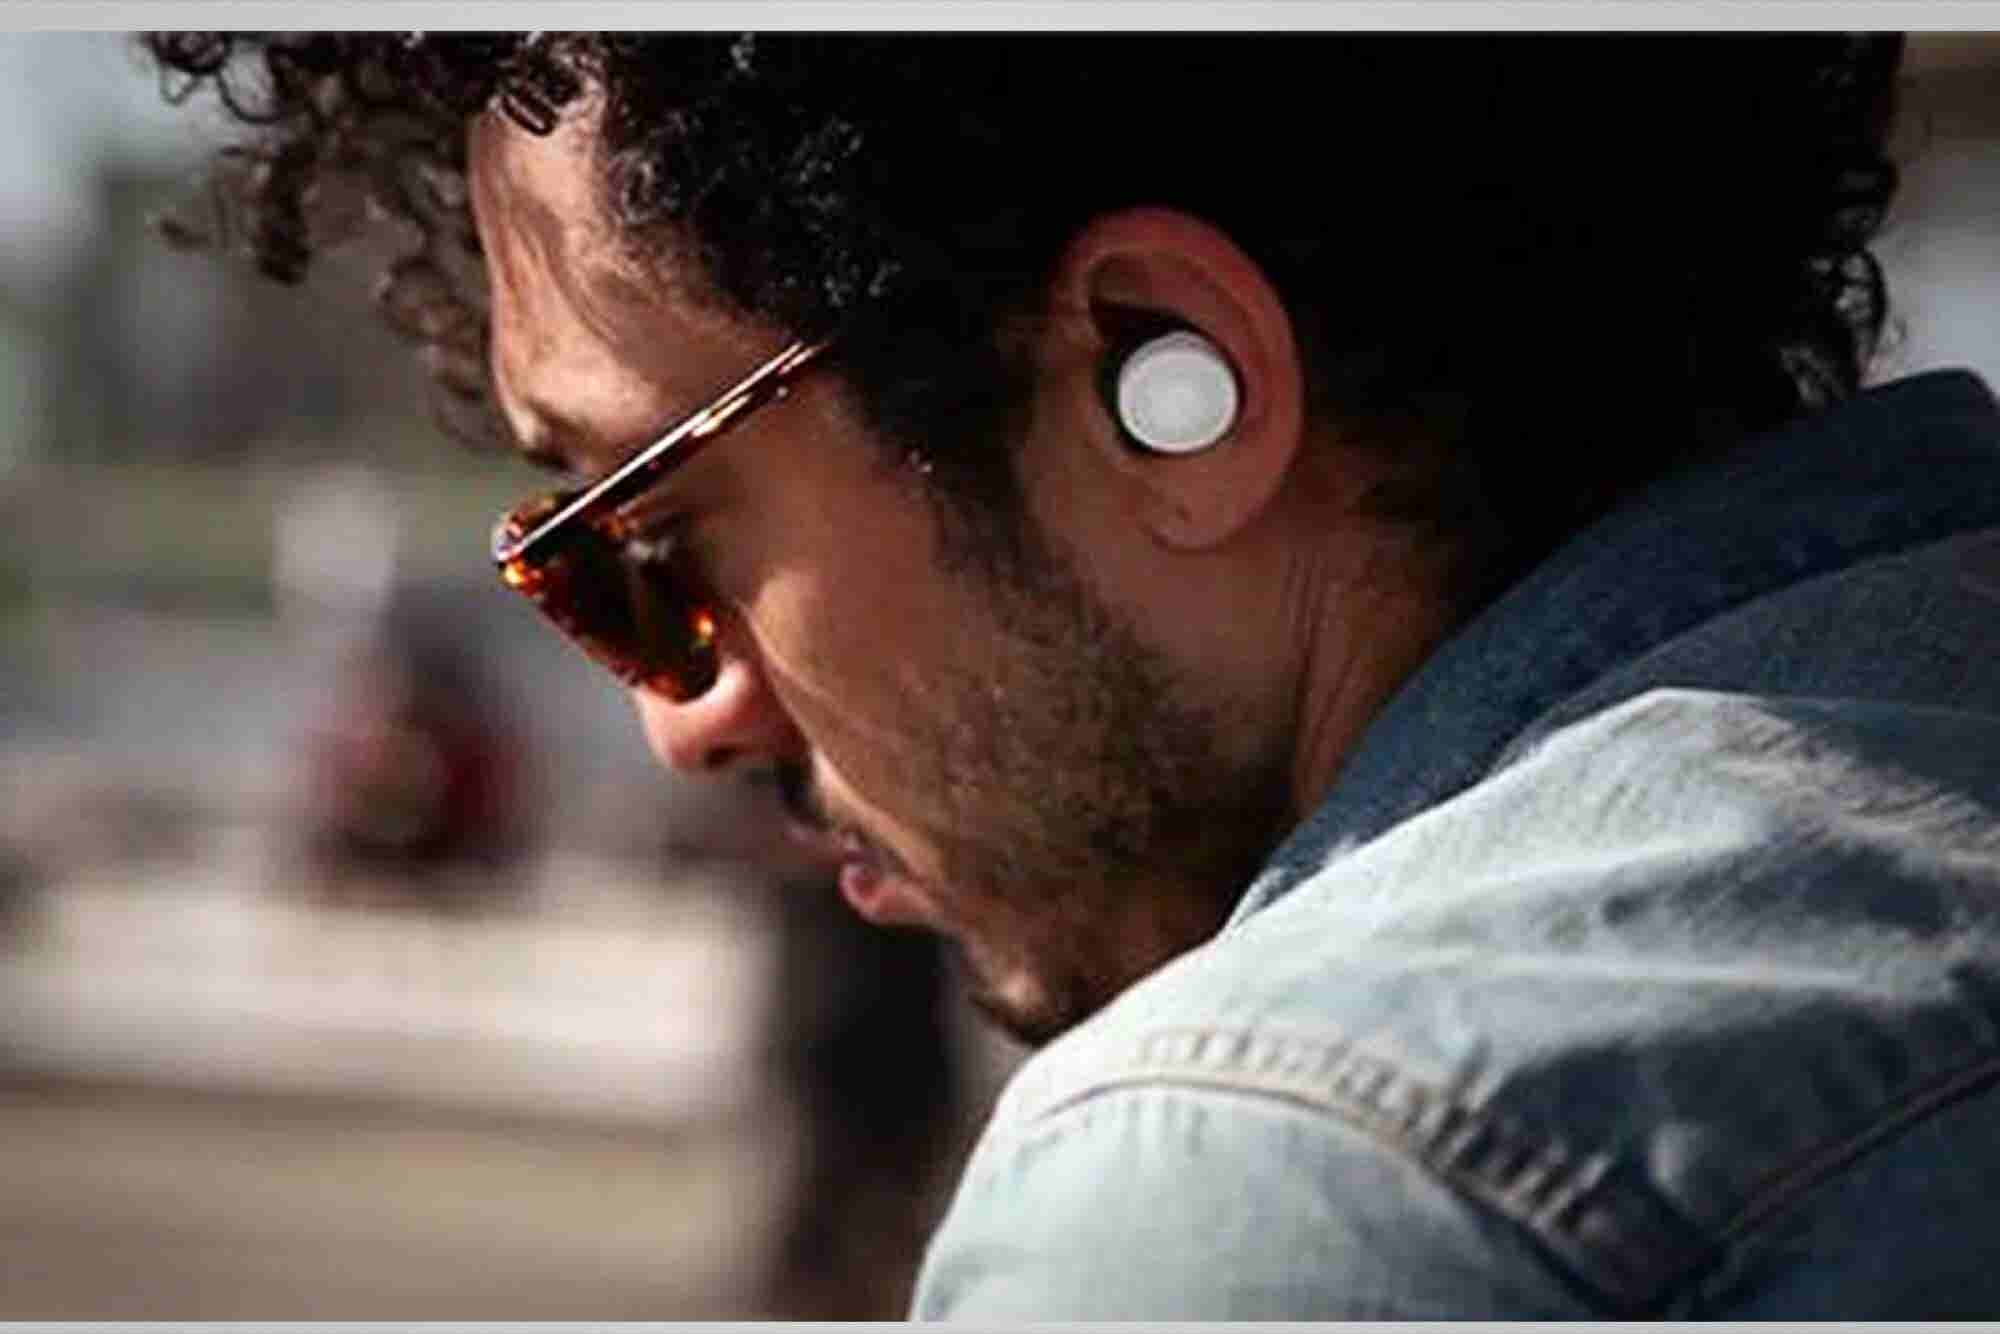 These New Earbuds Let You Adjust the Volume of Everything Around You